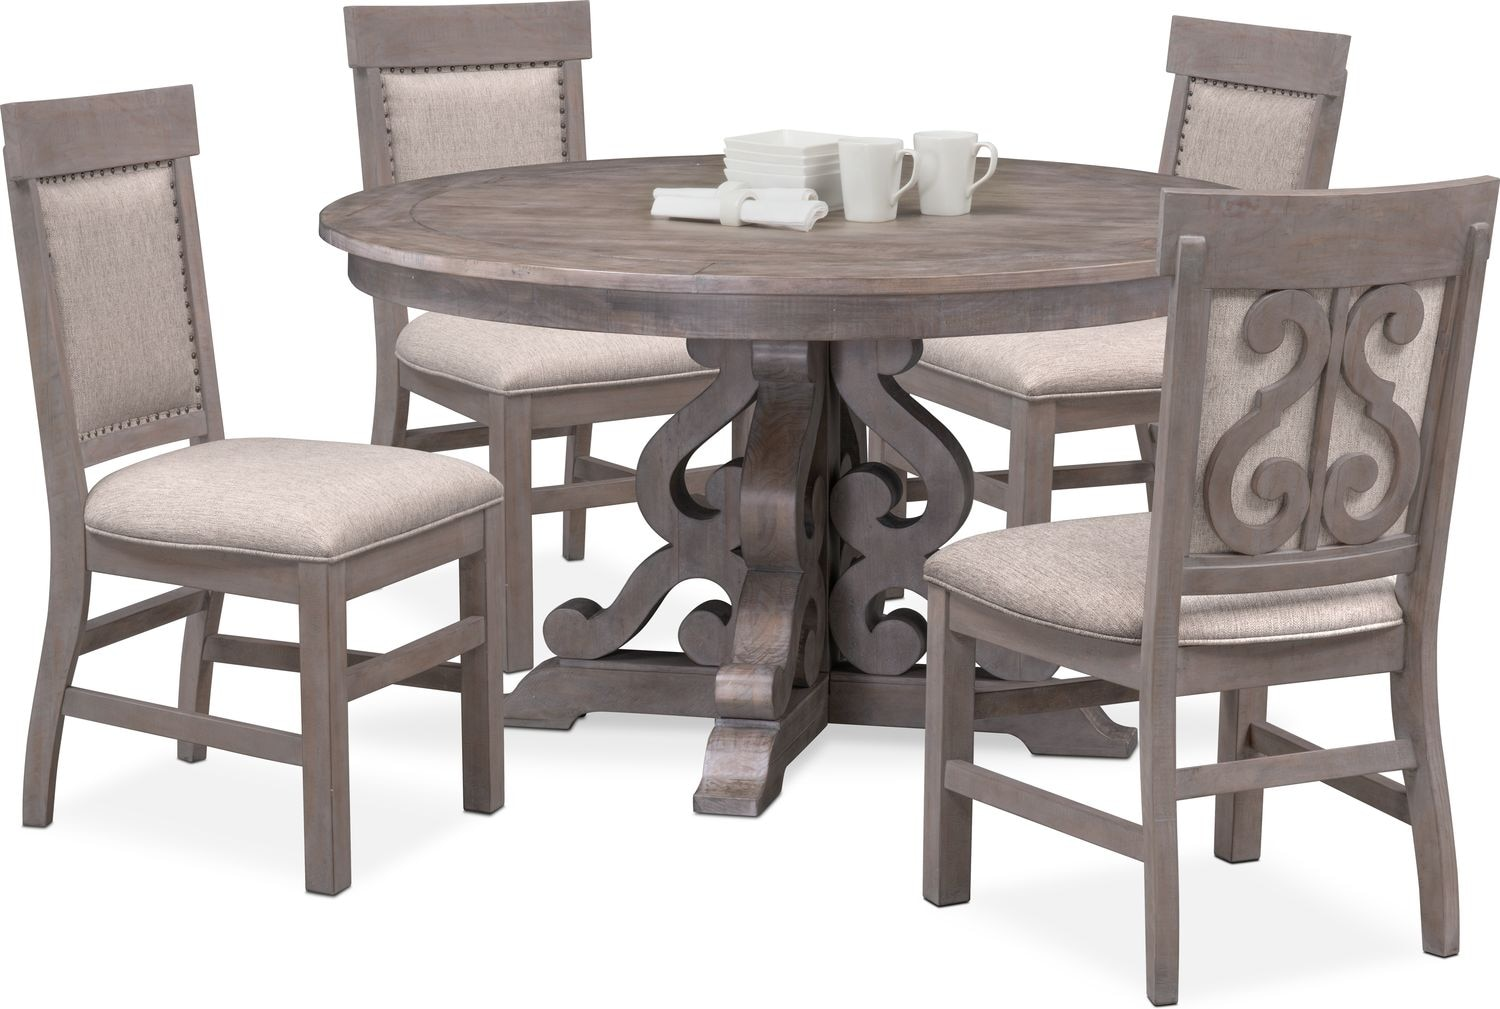 $1,069.95 Charthouse Round Dining Table And 4 Upholstered Side Chairs   Gray